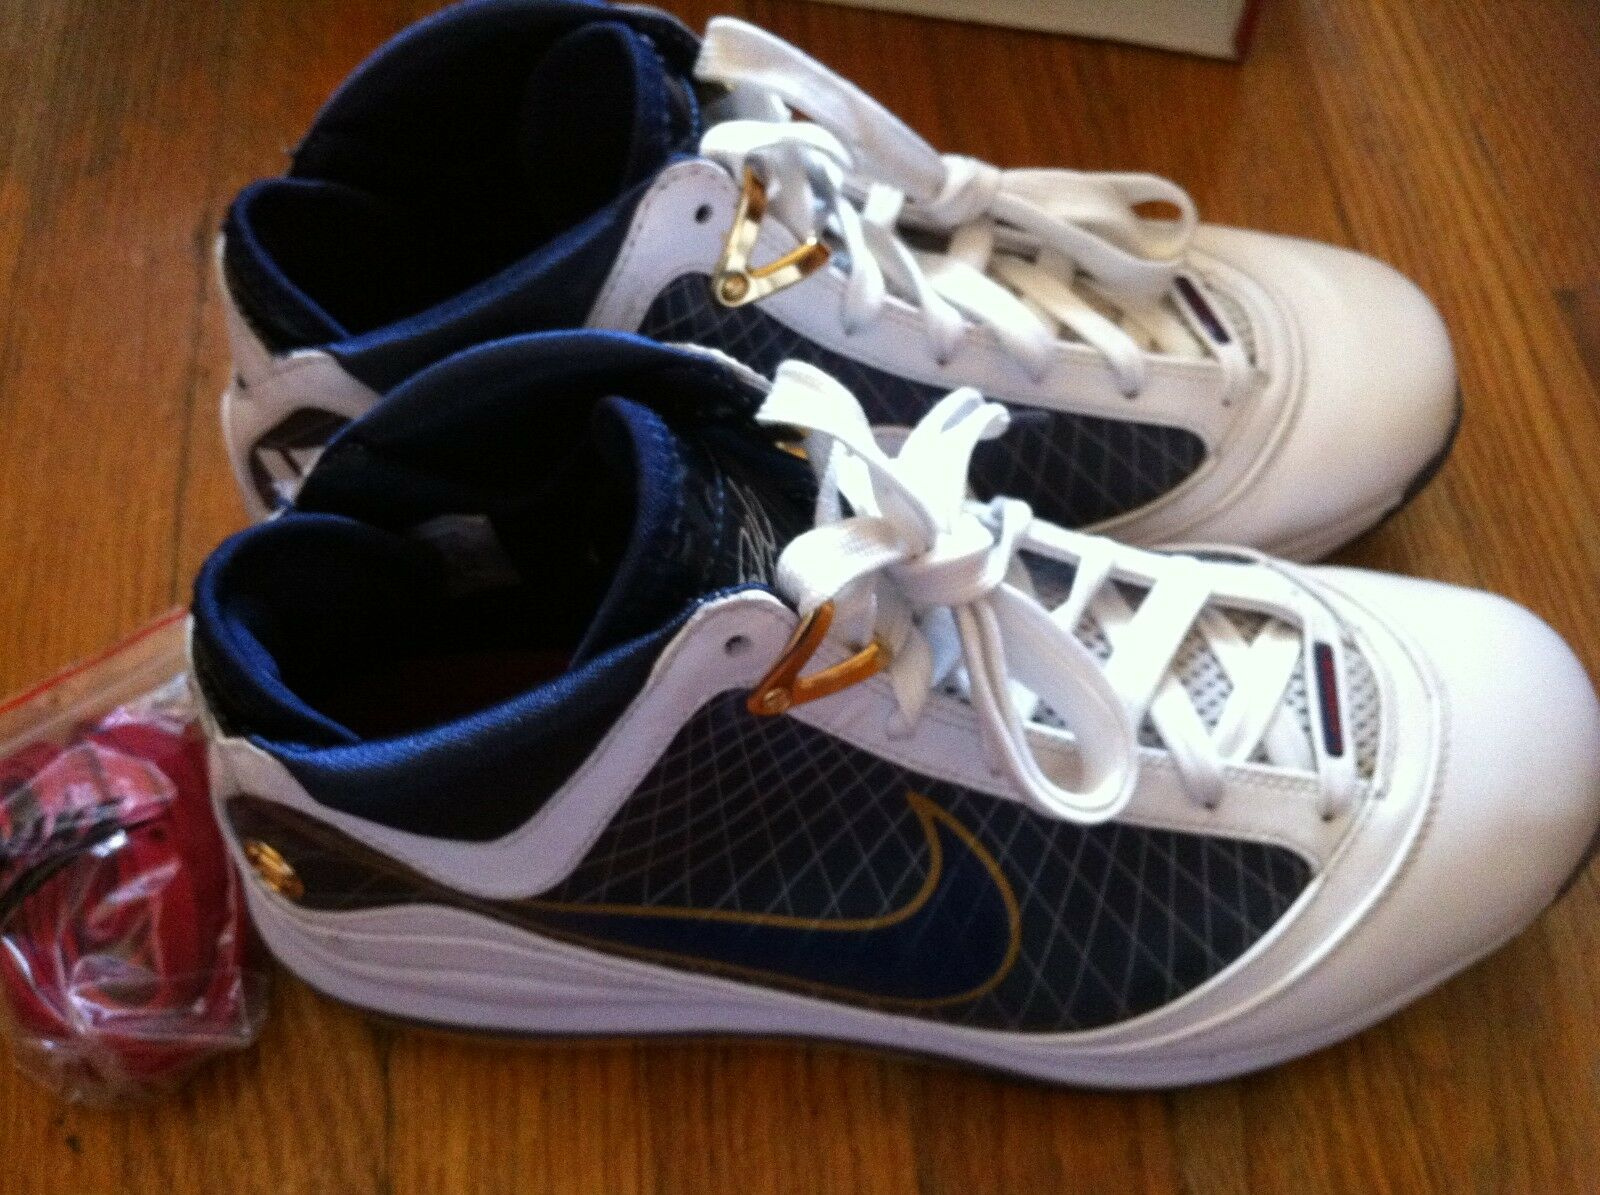 Nike Lebron 7 VII Cavs Comfortable best-selling model of the brand